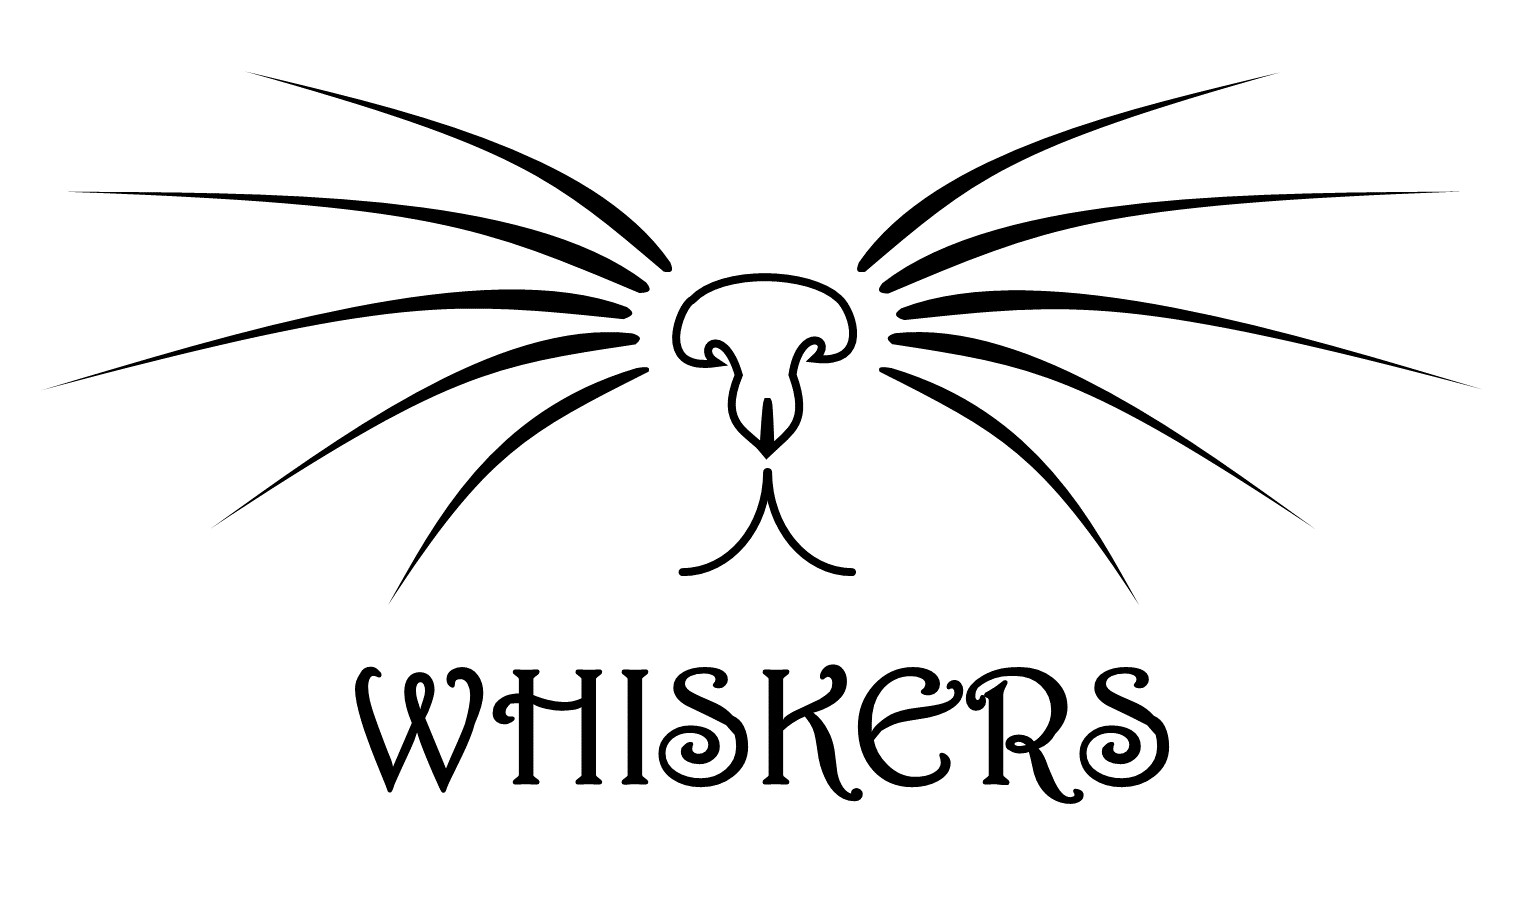 WWB Whiskers logo